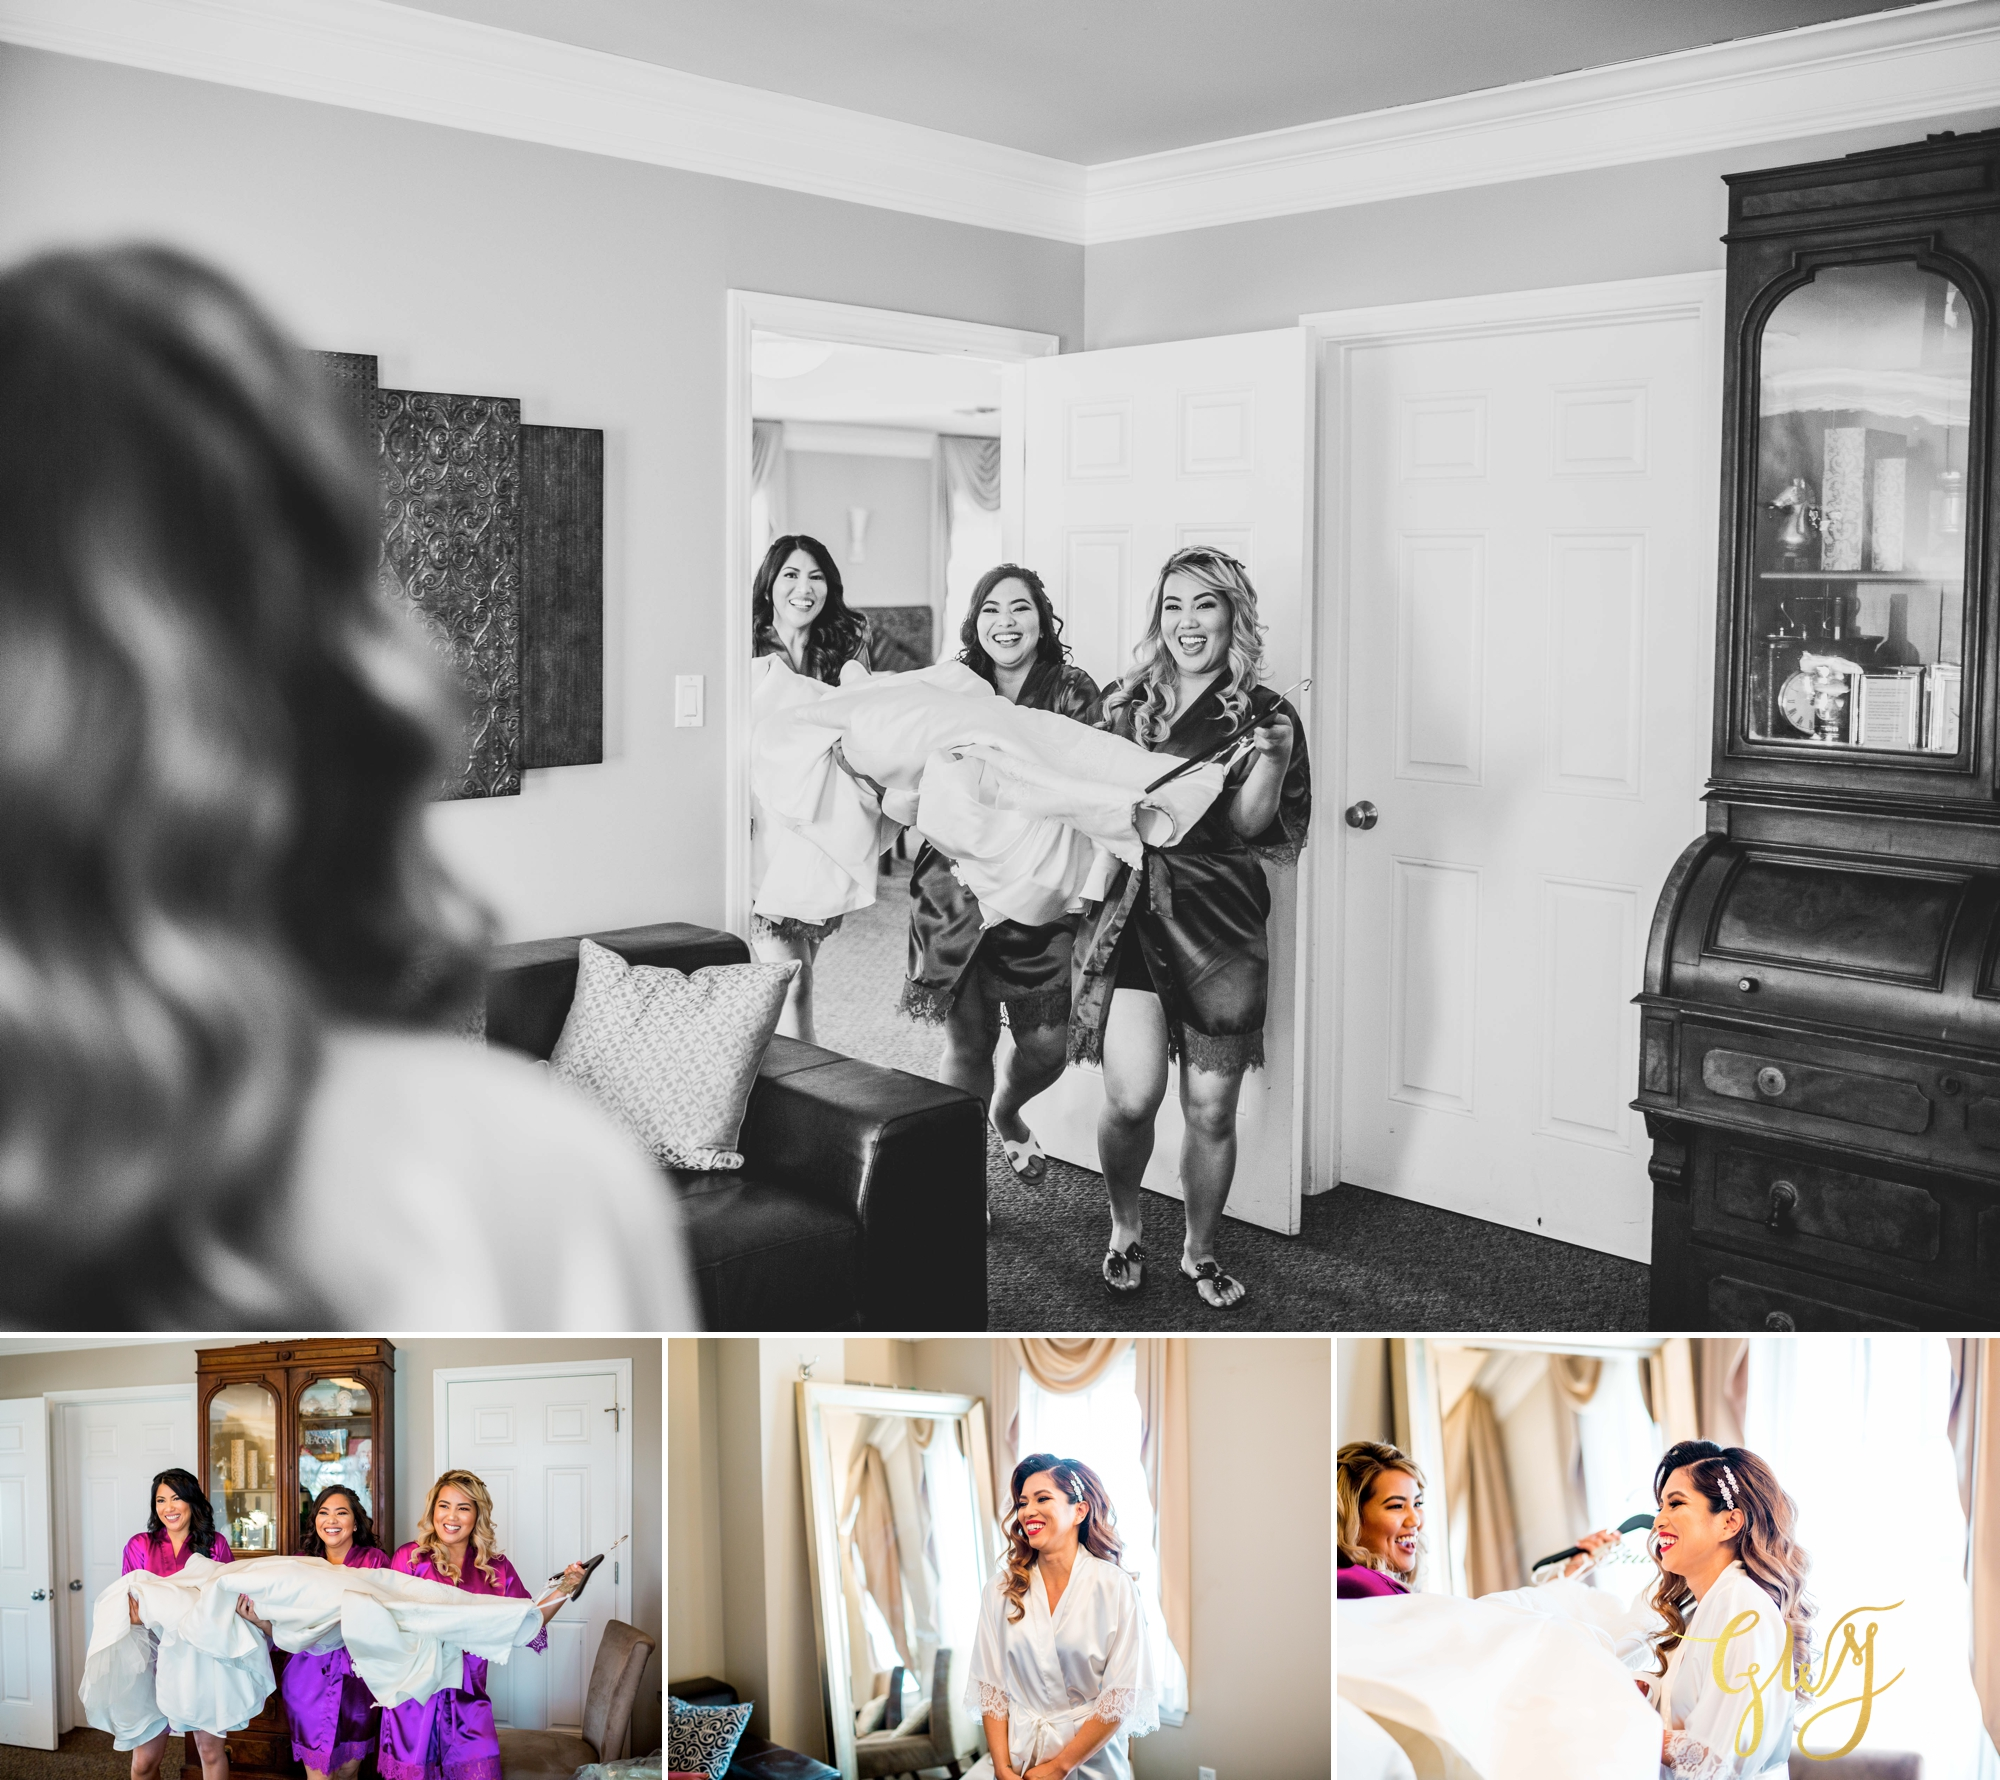 Andy + Caselyn's White House Event Center Orange County Spring Wedding by Glass Woods Media 7.jpg